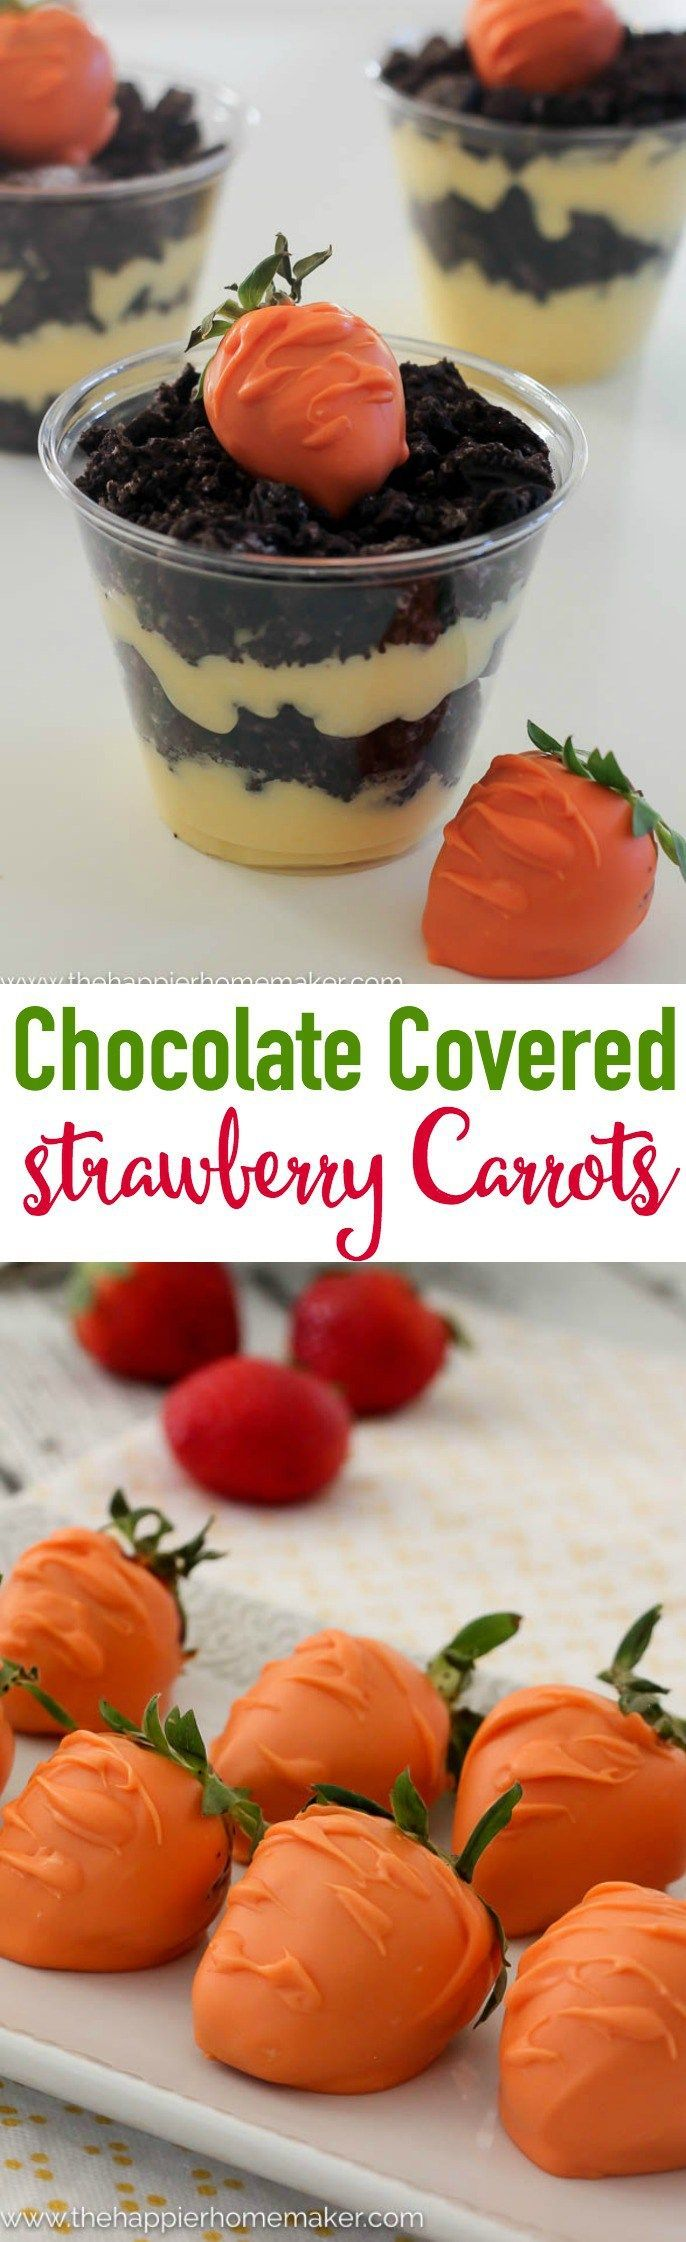 How cute are these? Strawberries covered in orange candy to look like carrots-this would be the perfect Easter dessert!